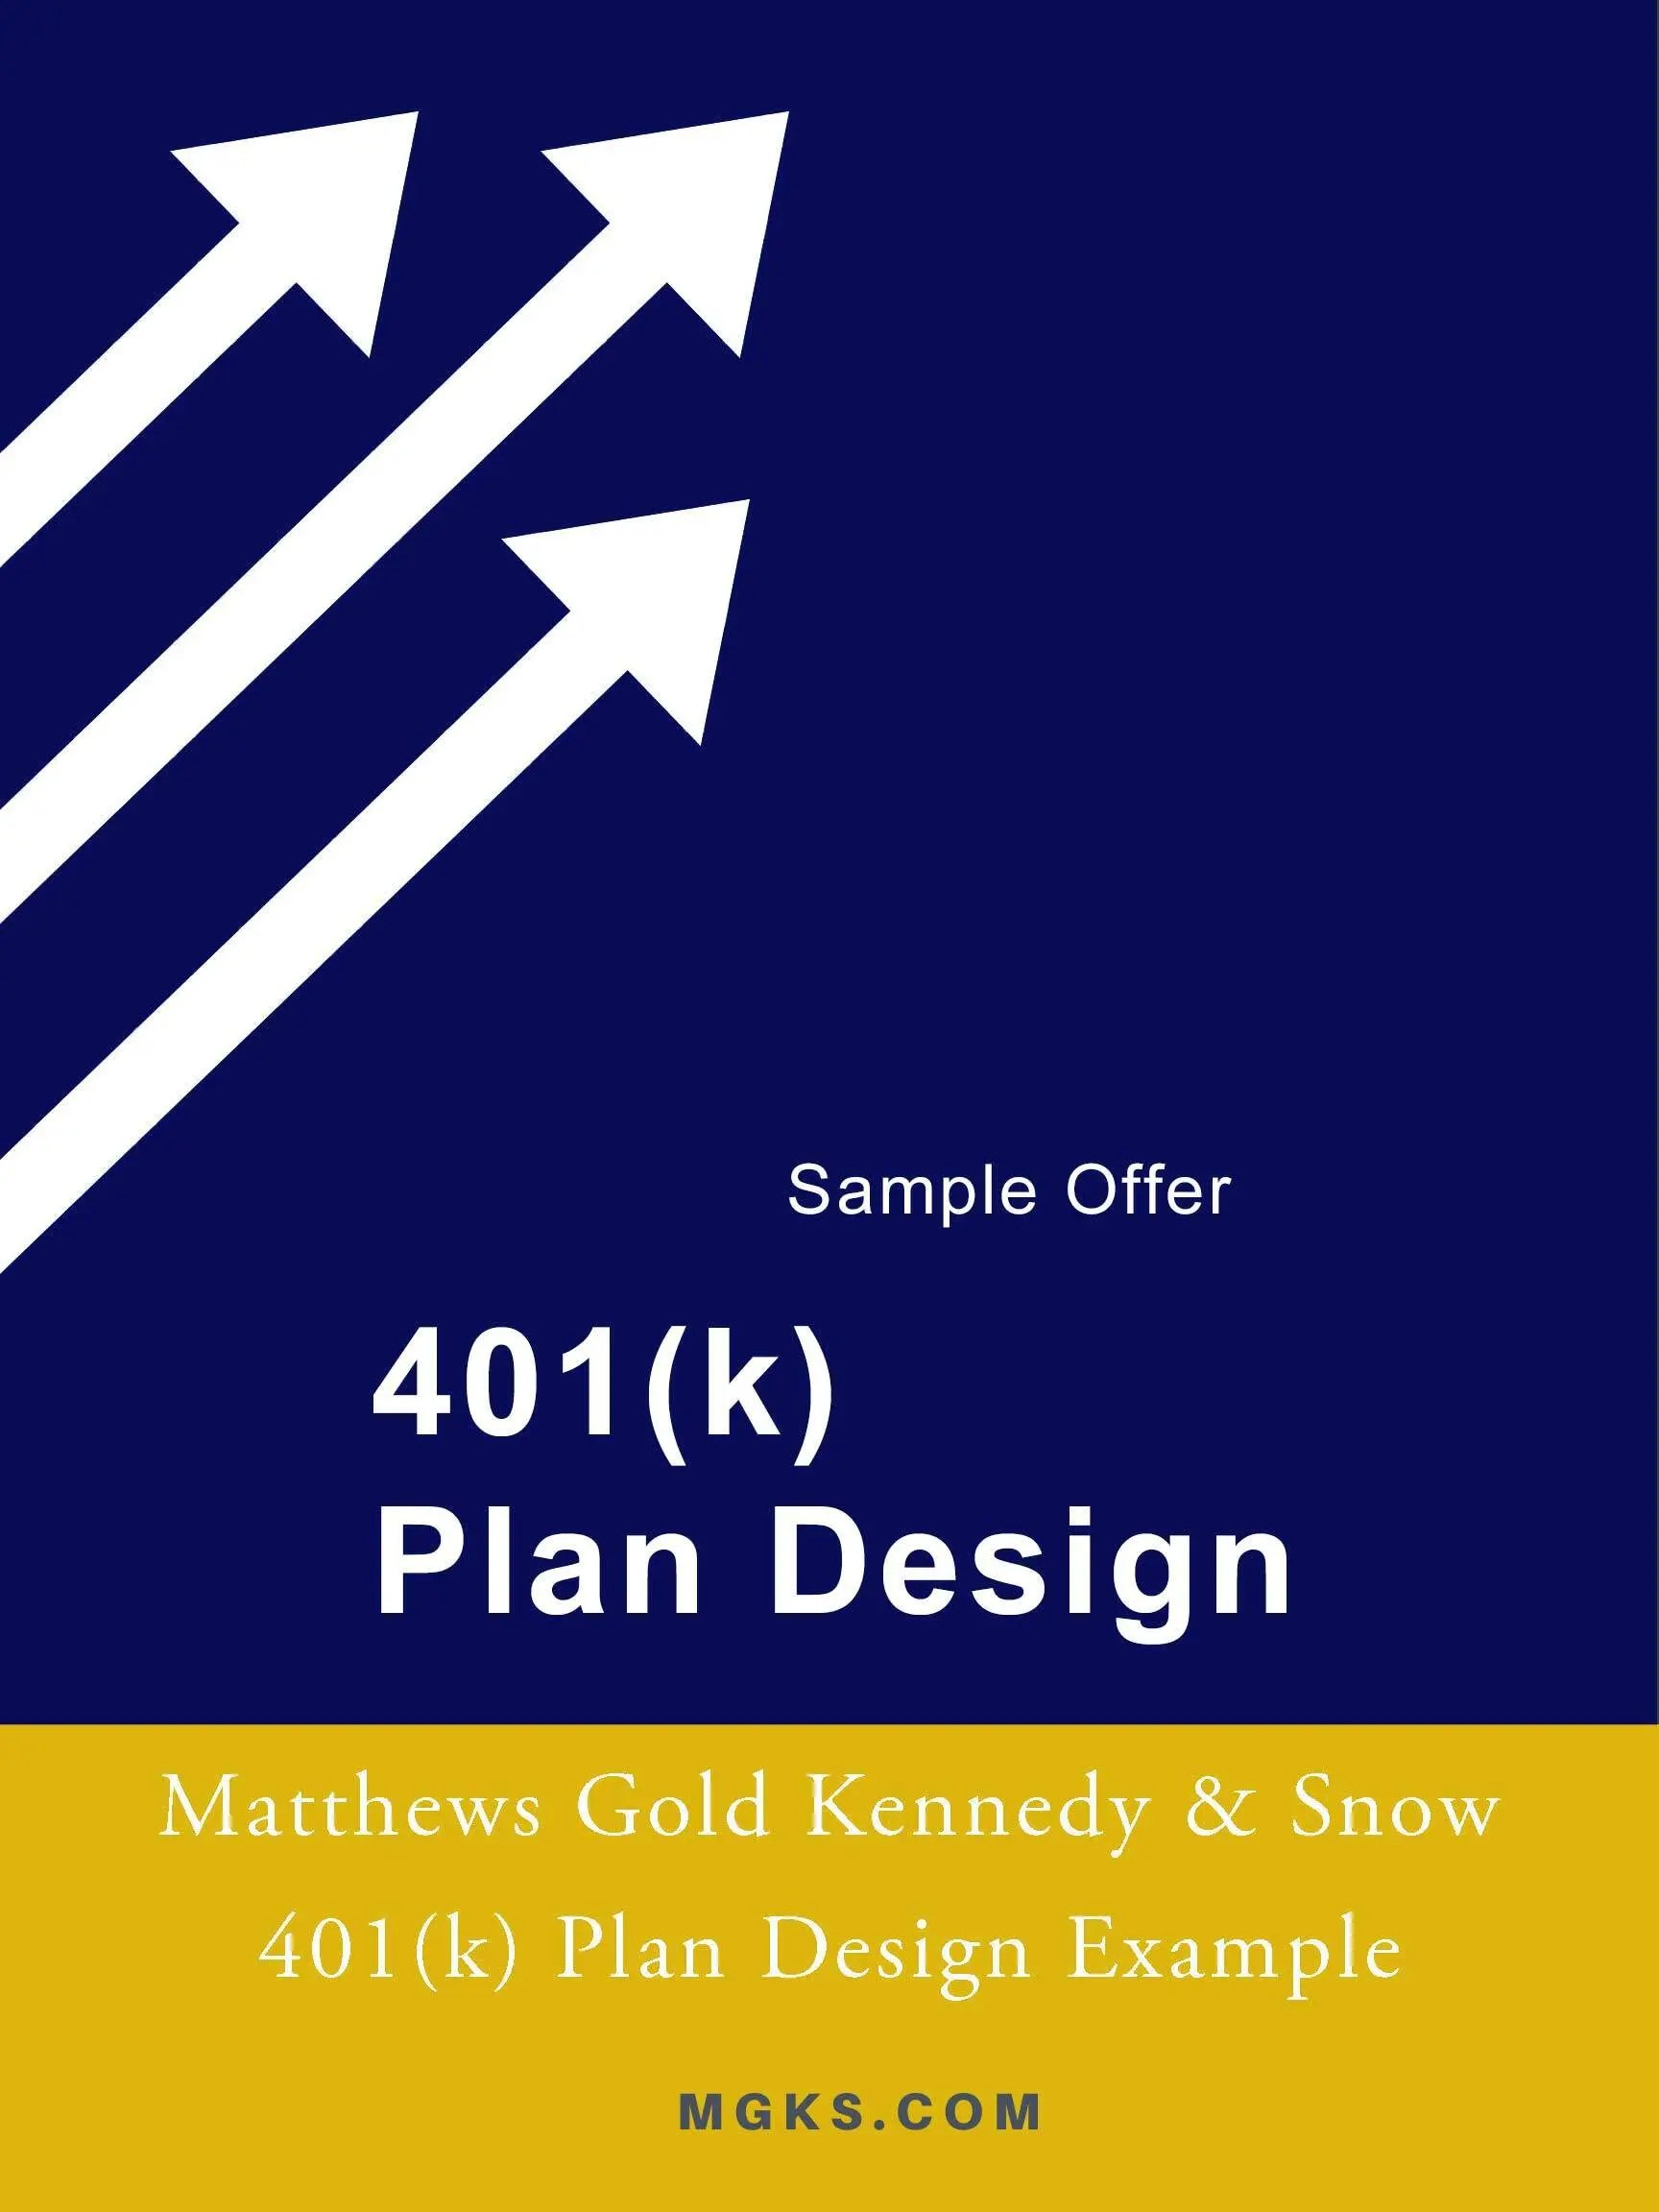 401(k) Sample E-book Offer